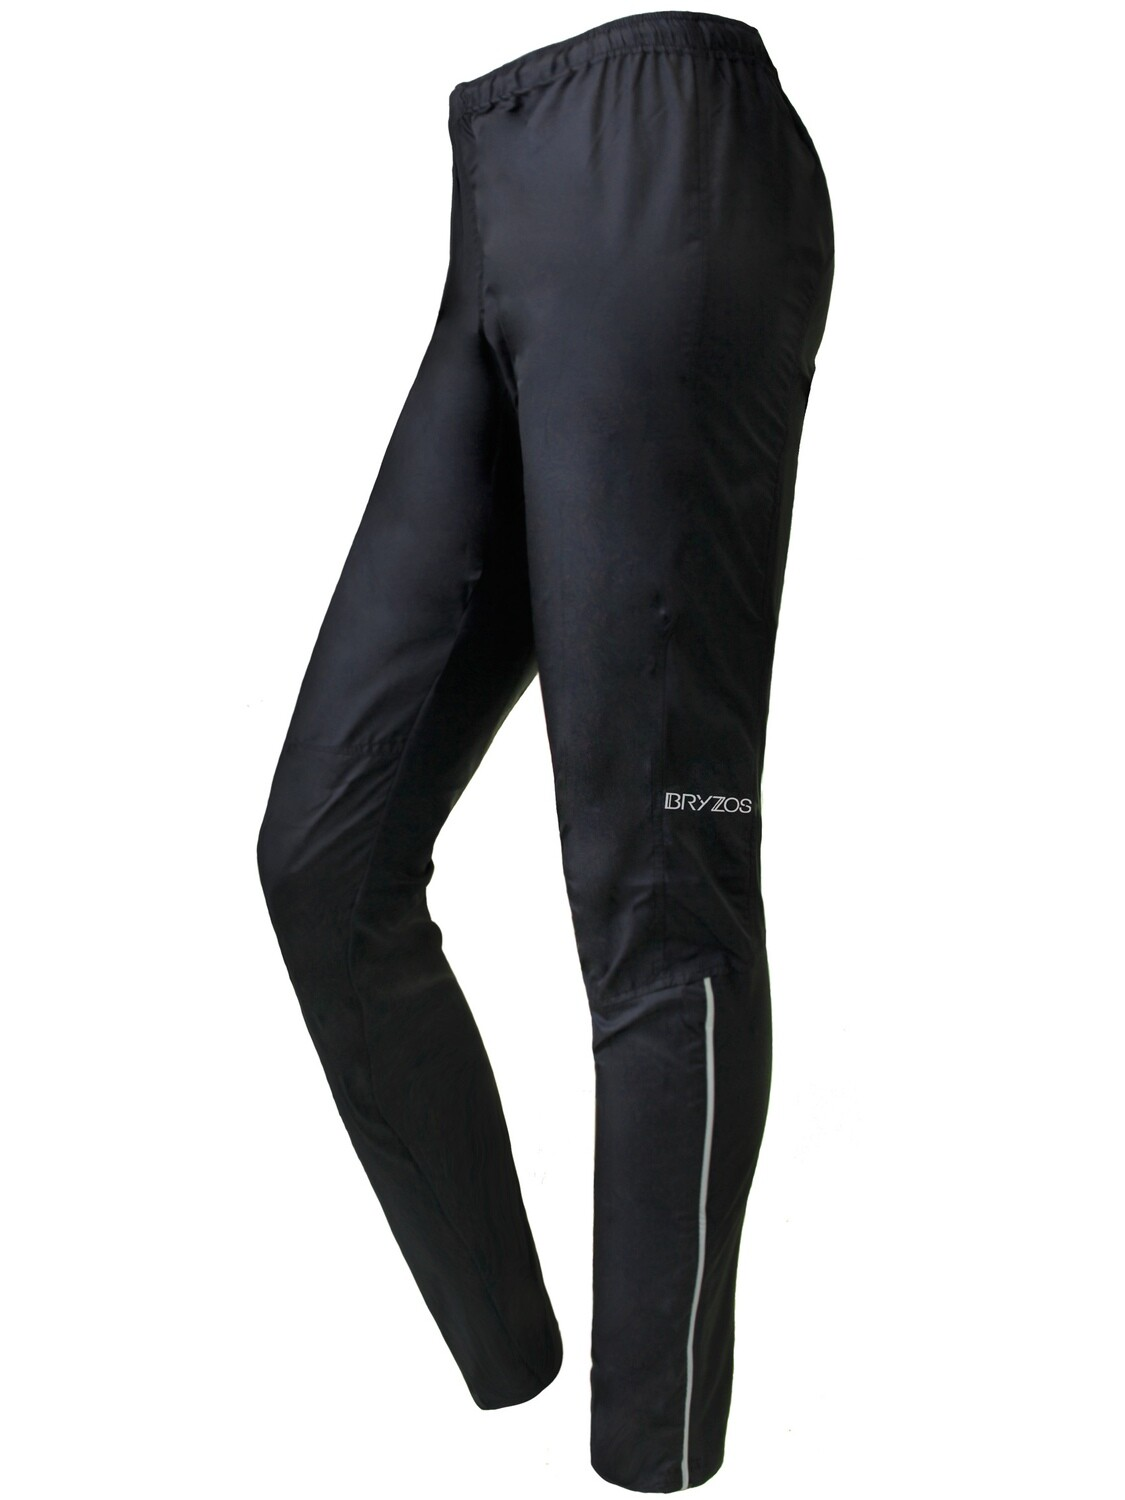 Silvus Training pants